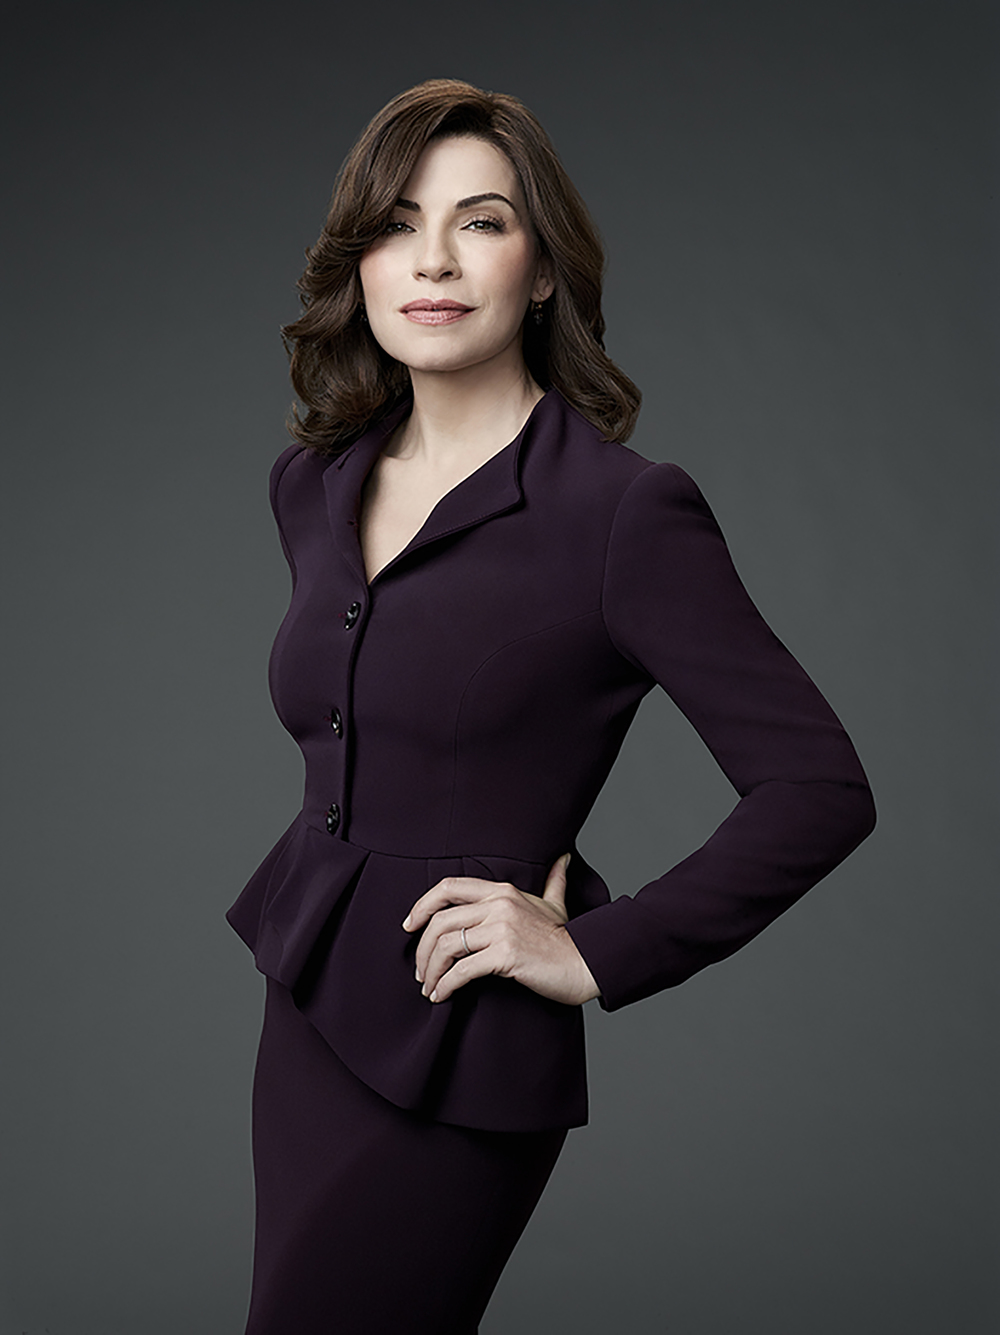 Julianna Margulies image - supplied/Ten